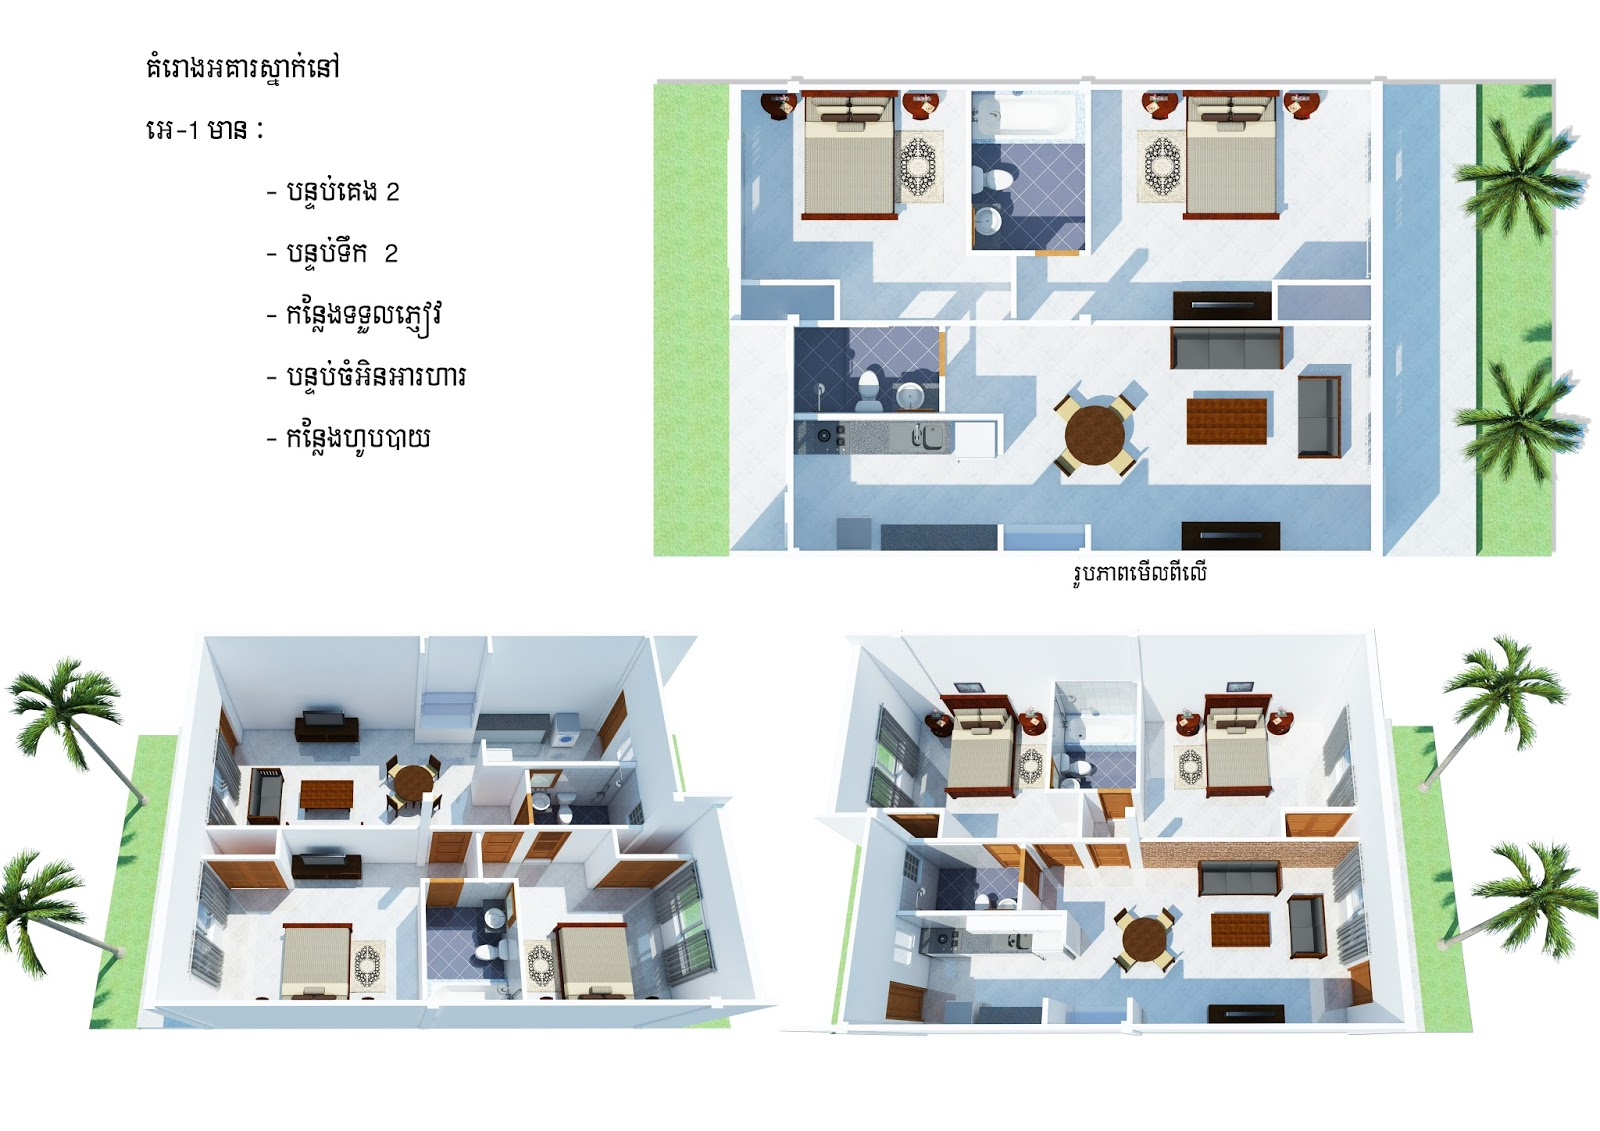 Sketchup model apartment design plan a01 ma house plan for Apartment structural plans